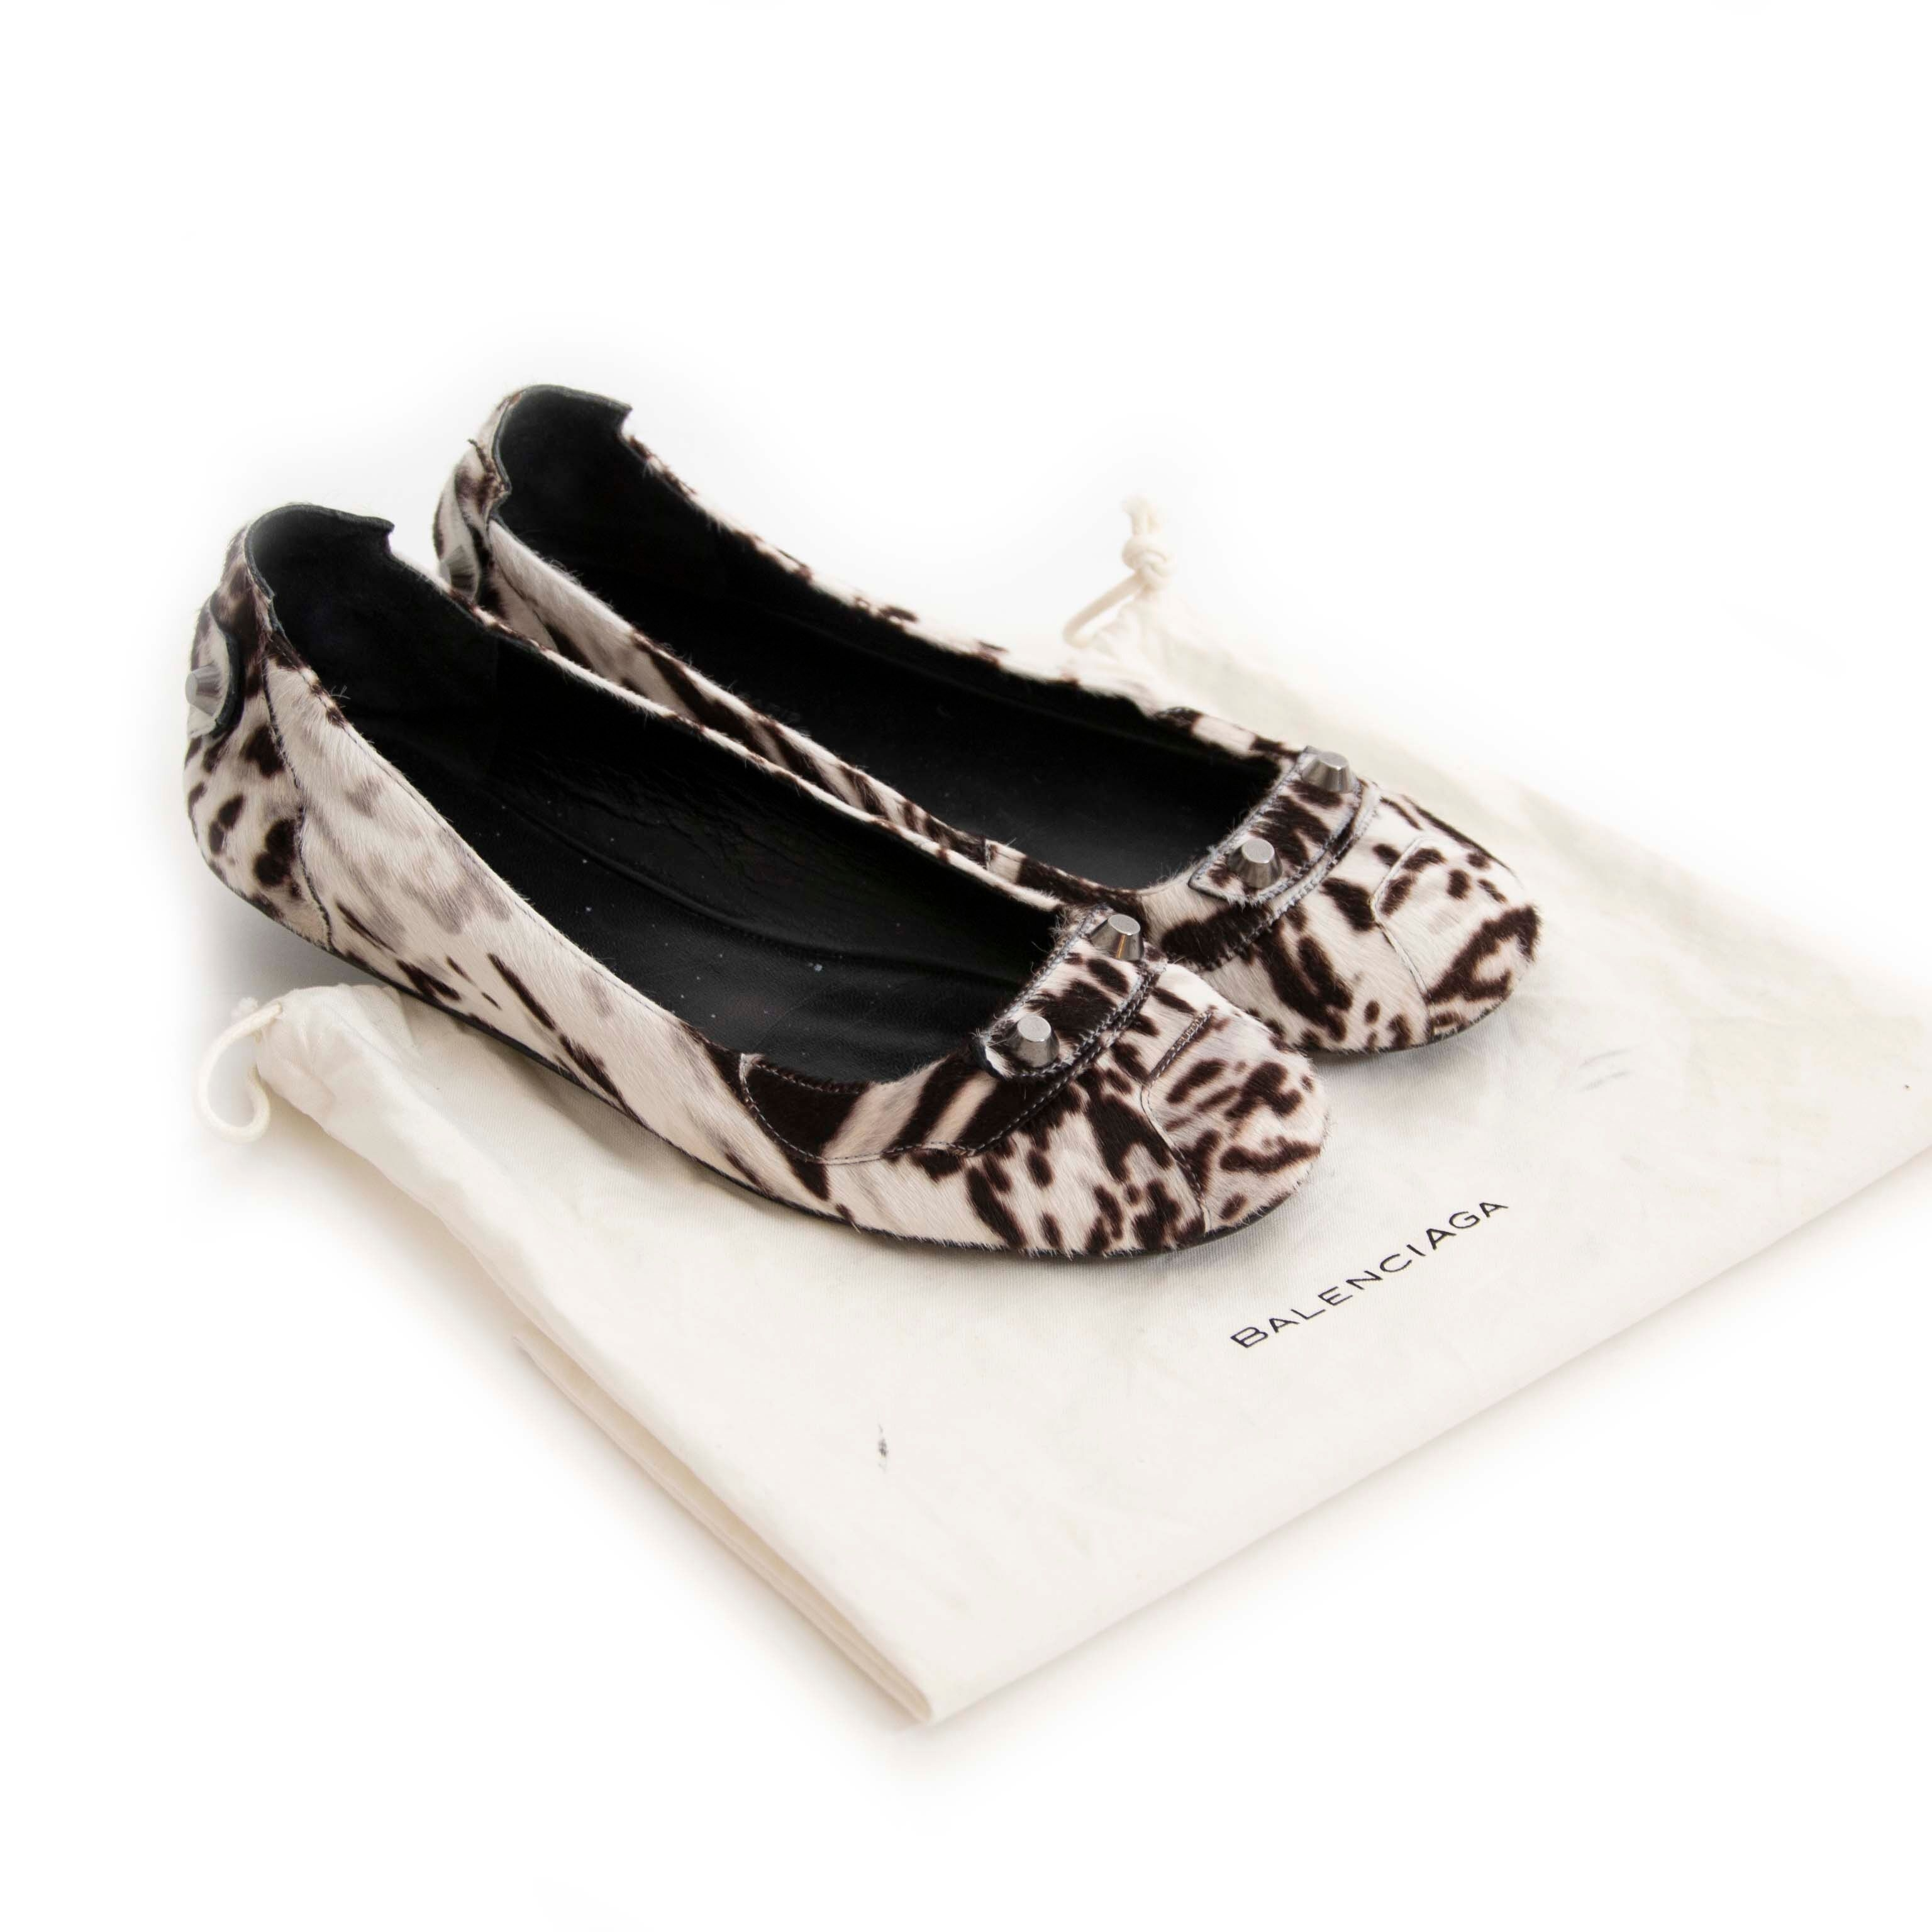 Buy secondhand Balenciaga shoes at Labellov.